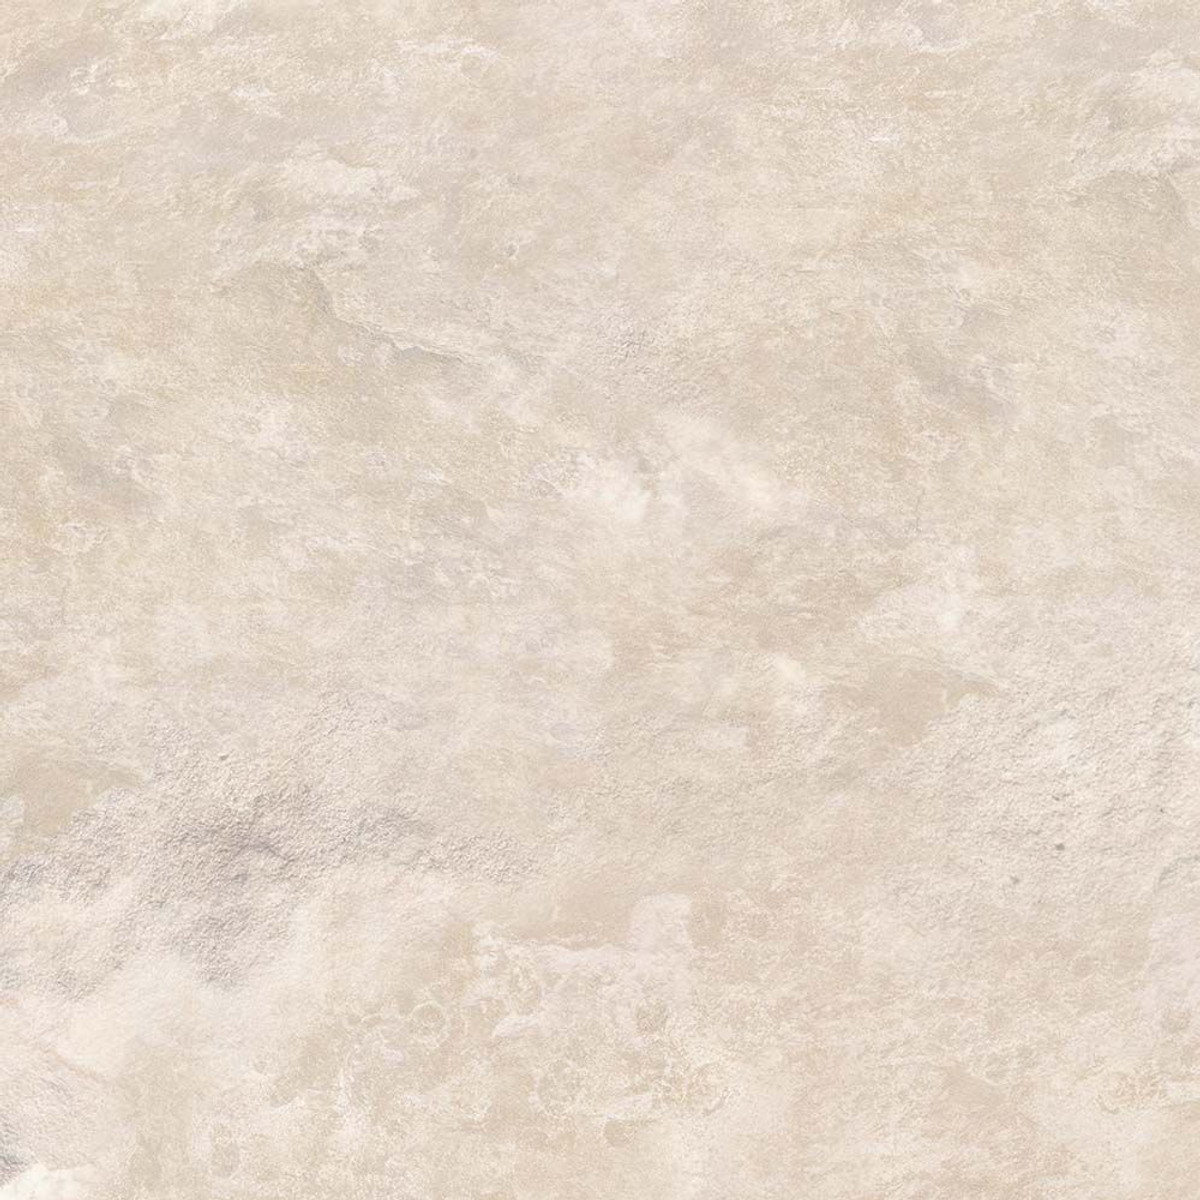 Perfection floor tile natural stone tile fieldstone 20 x 20 x 5mm perfection floor tile natural stone fieldstone dailygadgetfo Image collections